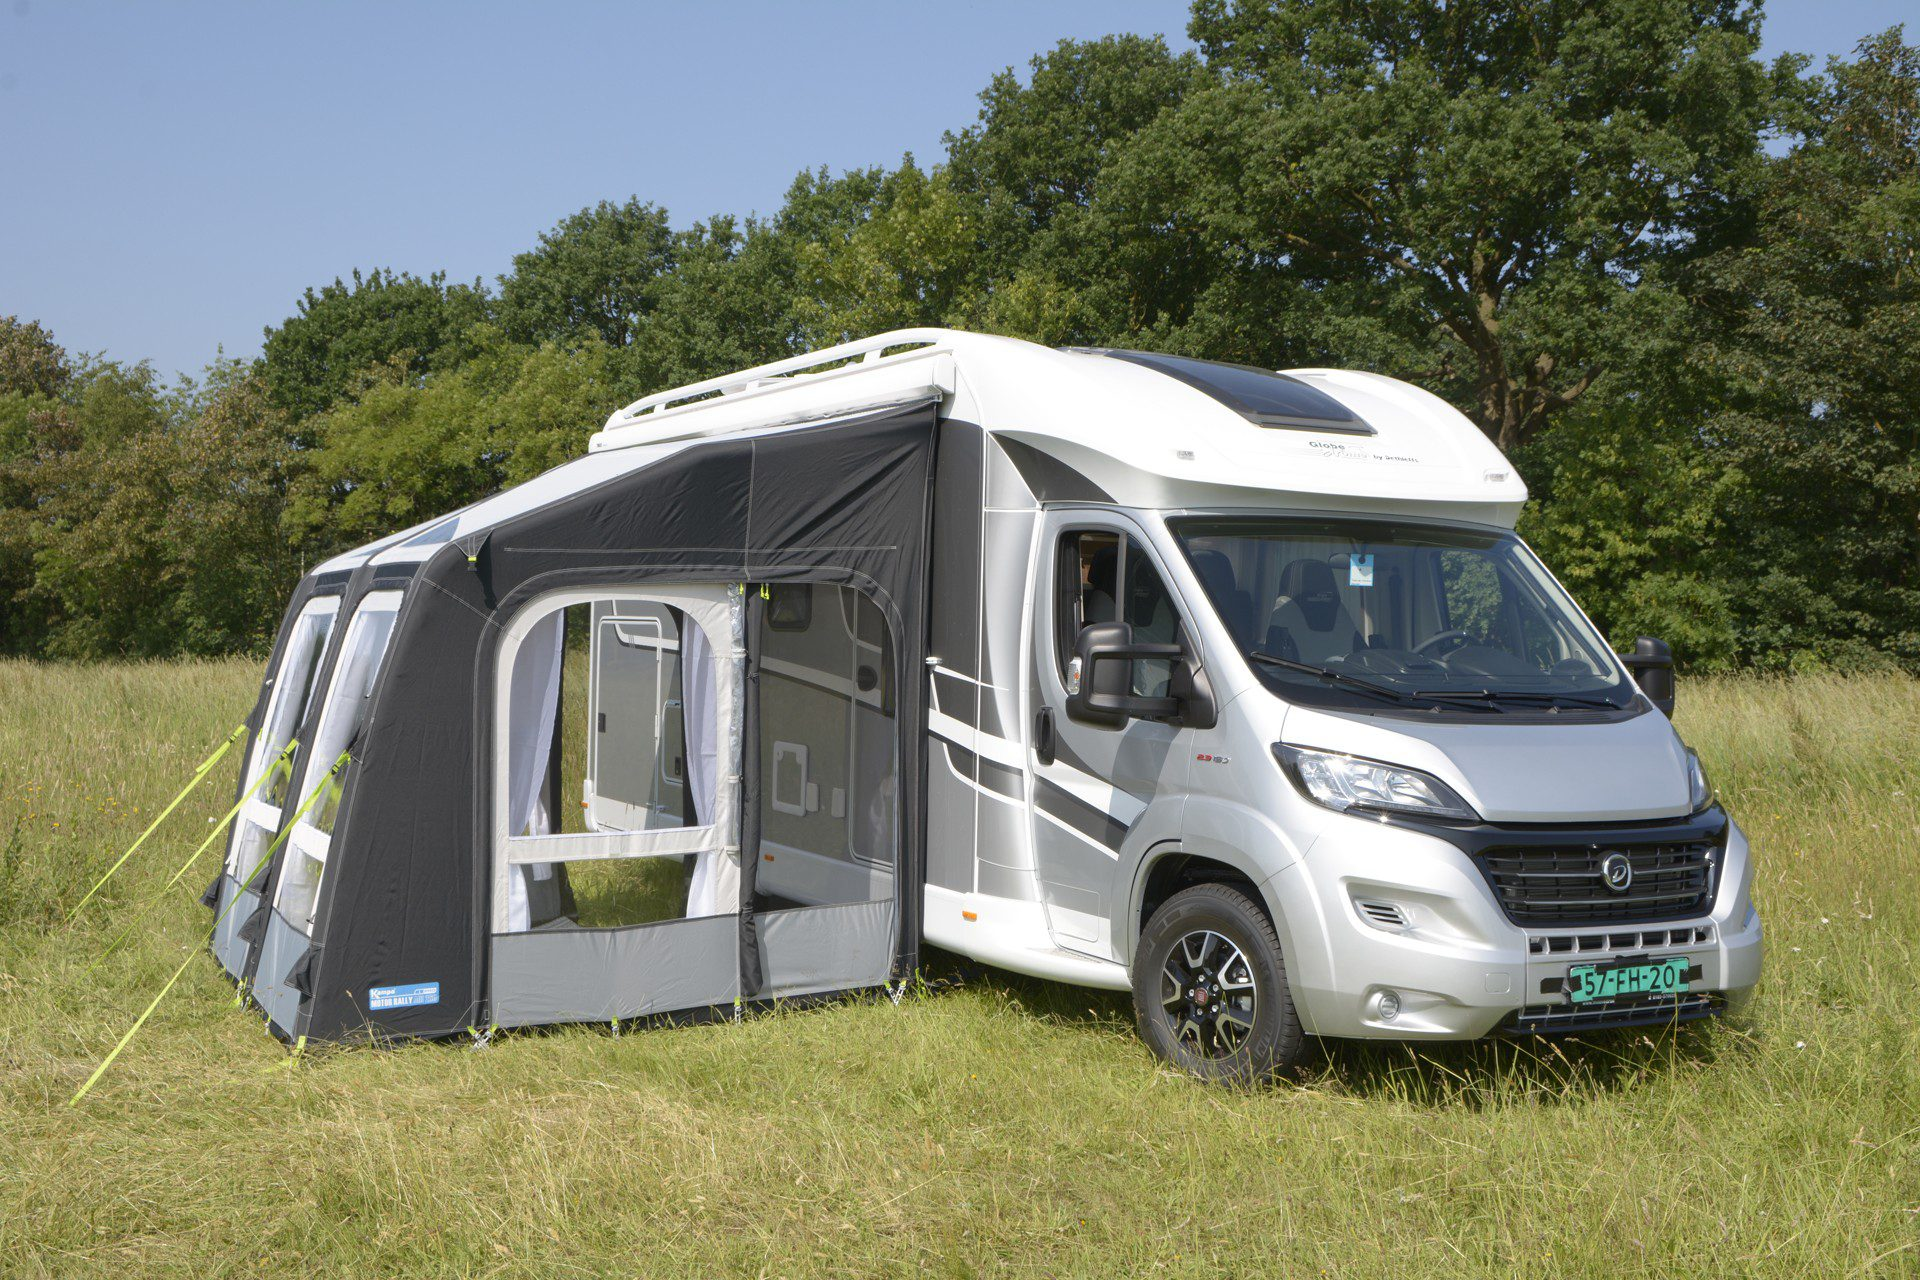 Kampa Motor Rally Air Pro 260 Motor Home Awning 2019 3